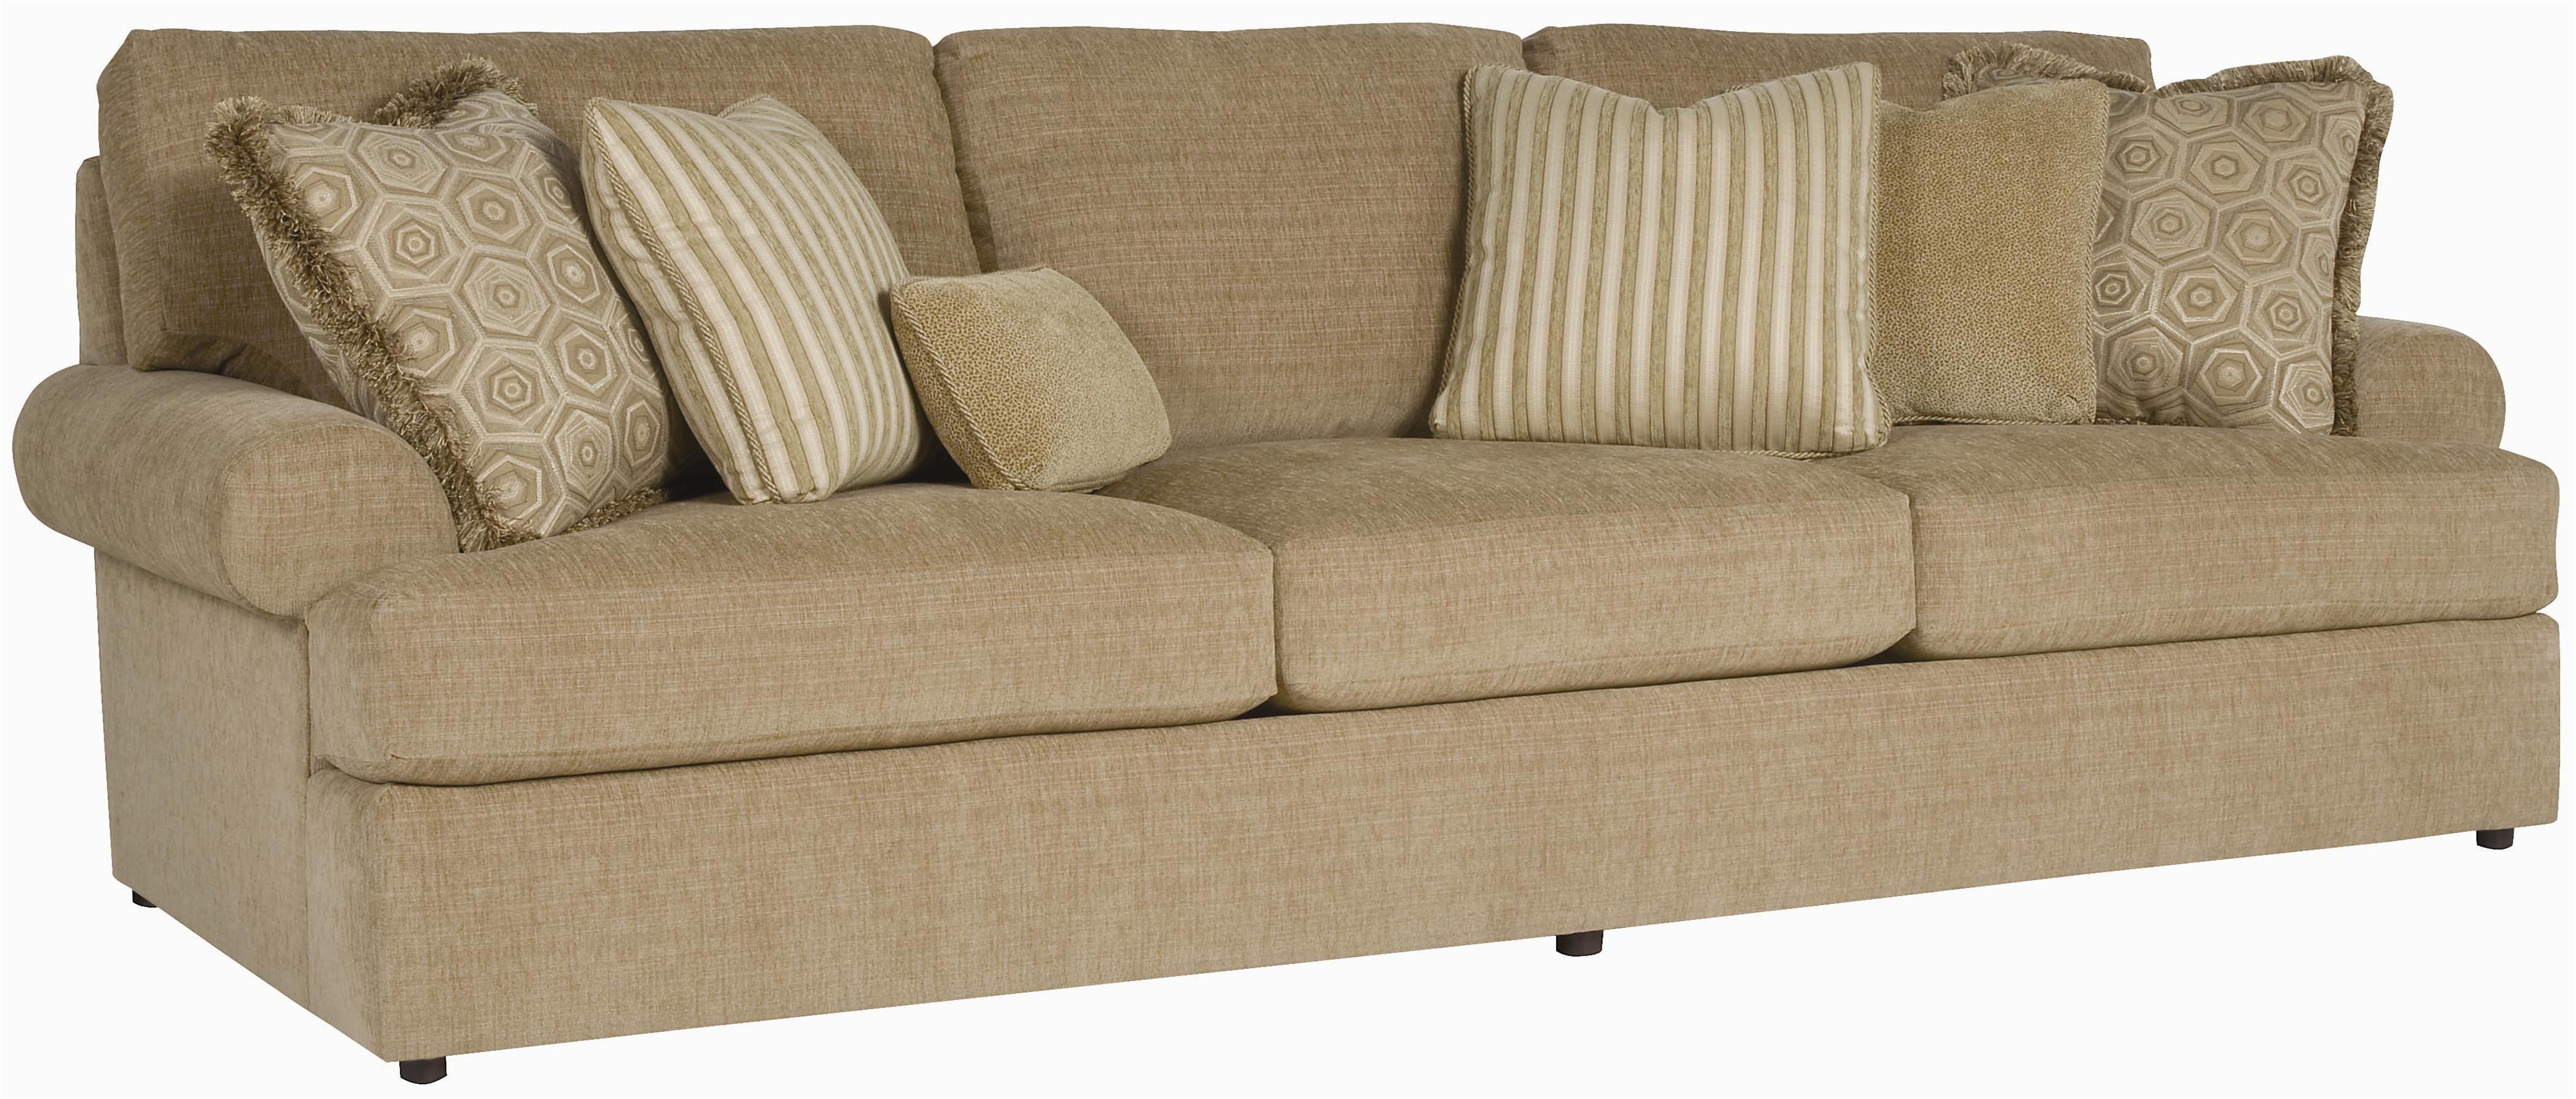 Bernhardt andrew stationary 3 seat sofa wayside for Bernhardt furniture